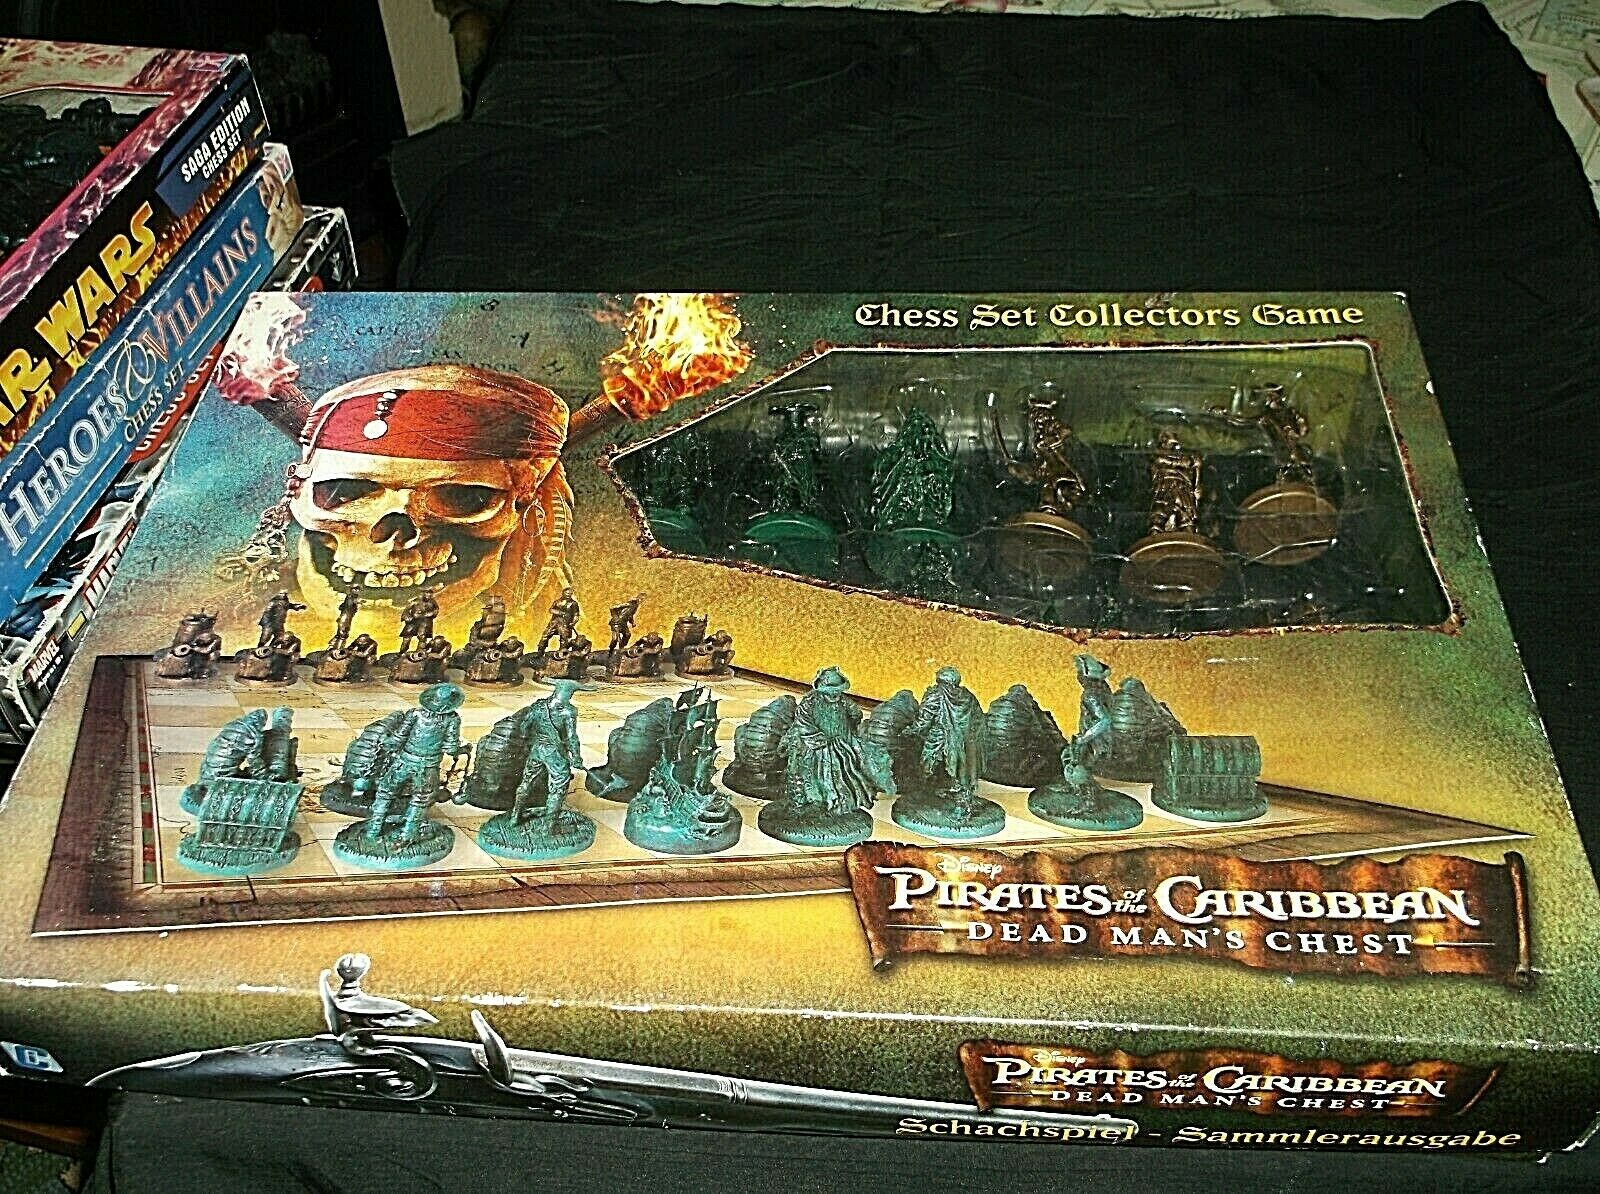 PIRATES OF THE CARIBBEAN DEAD MANS CHEST CHESS SET